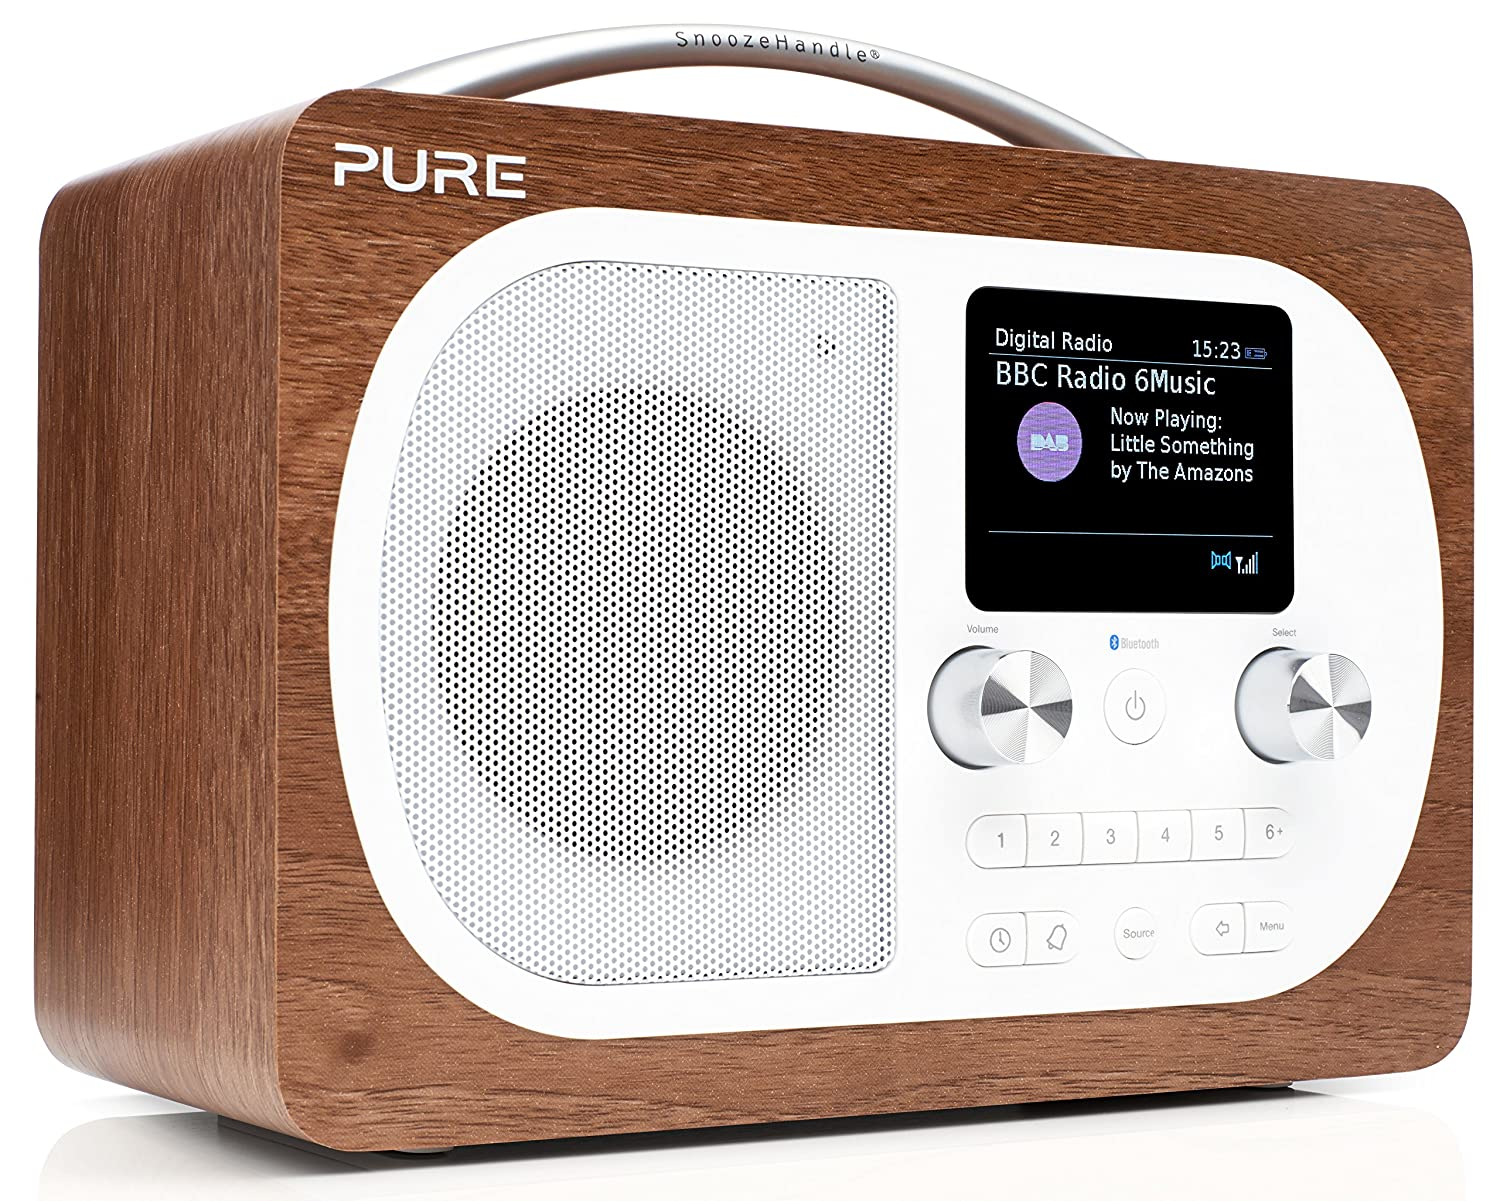 Pure Evoke H4 Radio (DAB/DAB+ Digital- und UKW-Radio mit Bluetooth und  Küchen-Timer) walnuss: Amazon.de: Heimkino, TV & Video